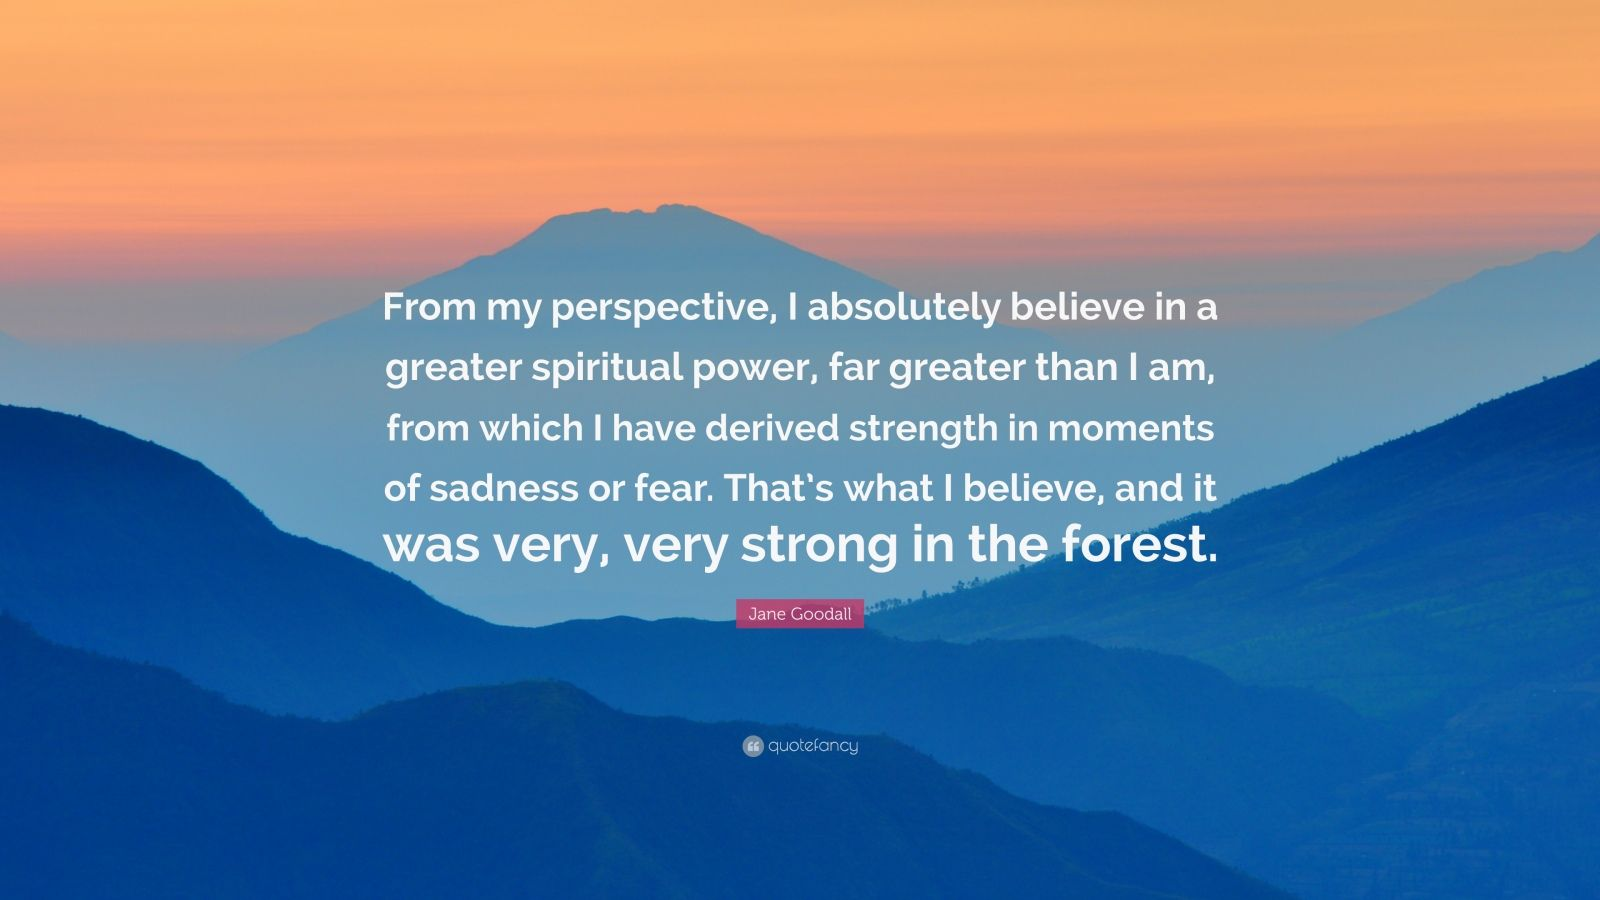 """Jane Goodall Quote: """"From my perspective, I absolutely believe in a greater spiritual power, far greater than I am, from which I have derived strength in moments of sadness or fear. That's what I believe, and it was very, very strong in the forest."""""""